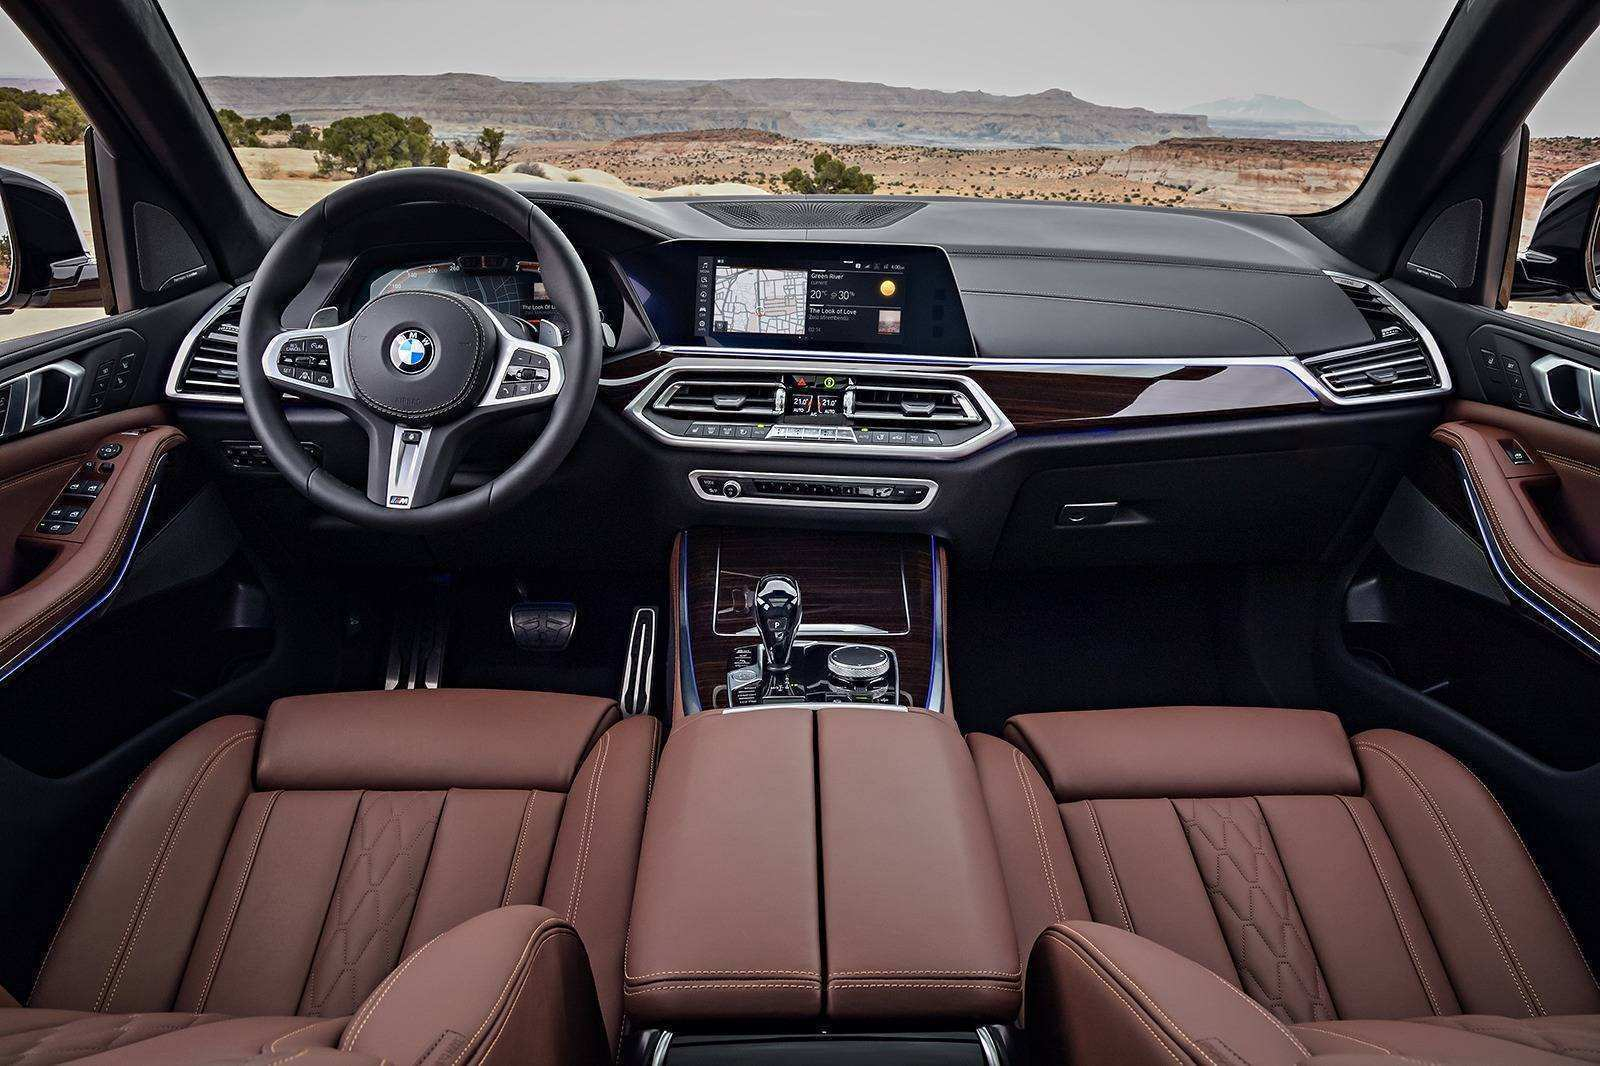 25 Concept of Bmw X5 2019 New Review for Bmw X5 2019